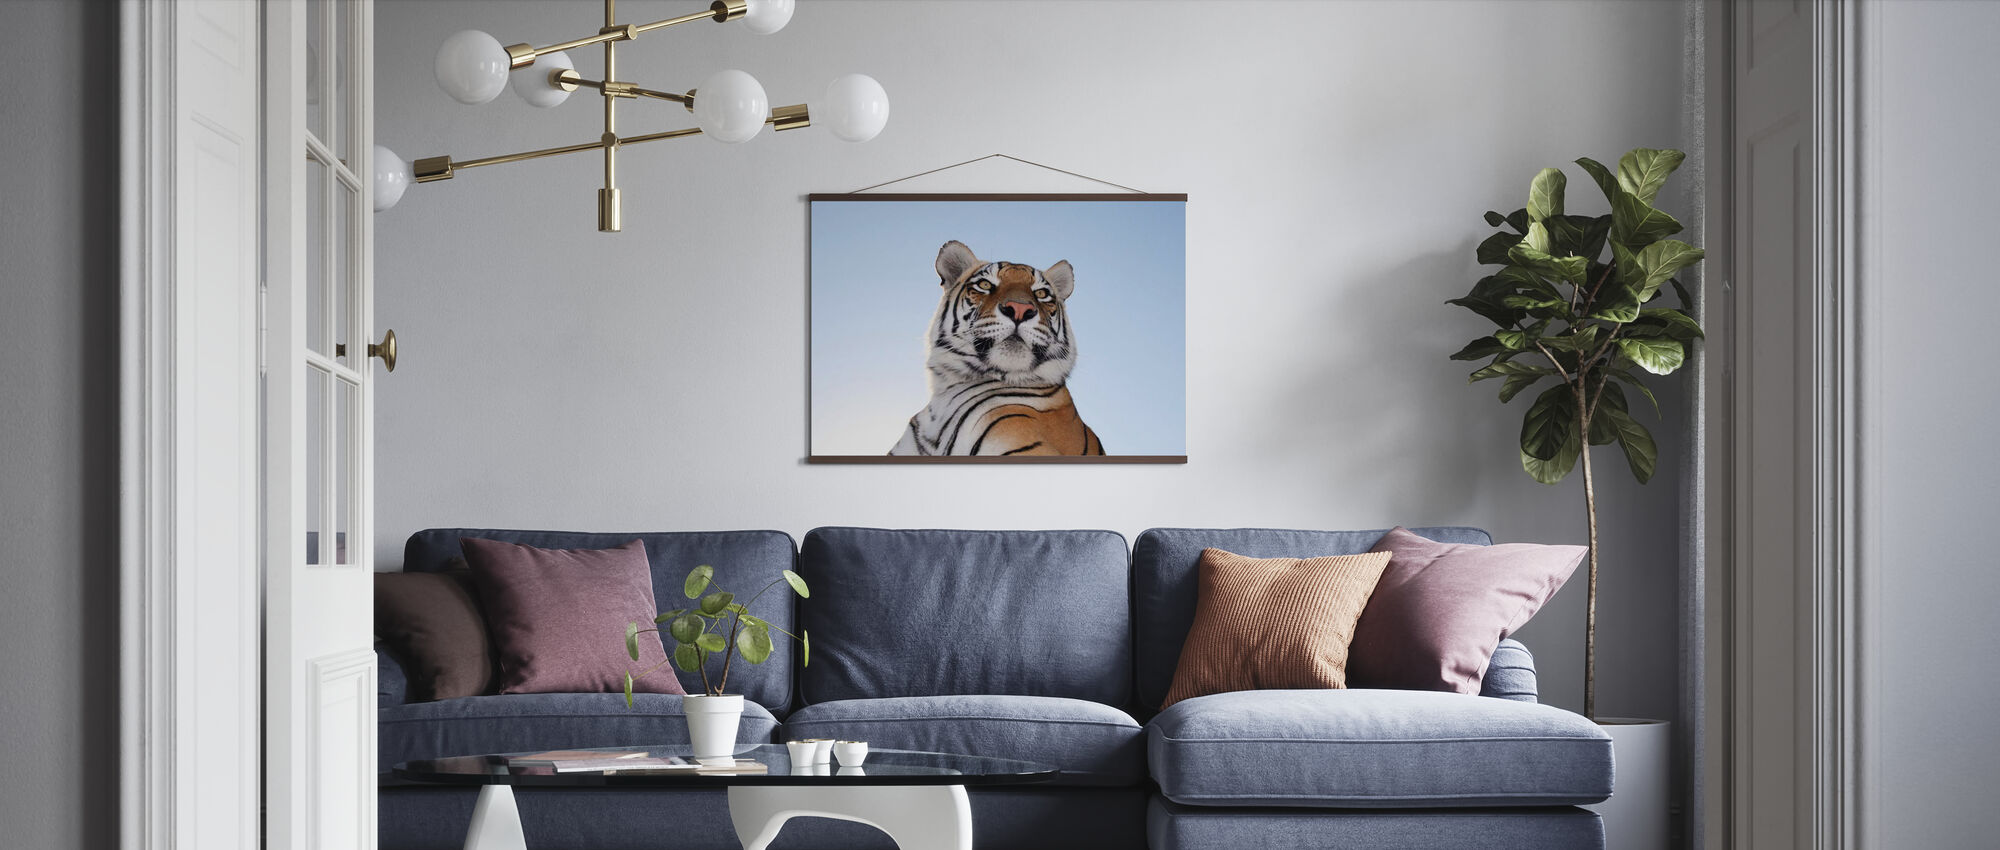 King of the Mountain - Poster - Living Room